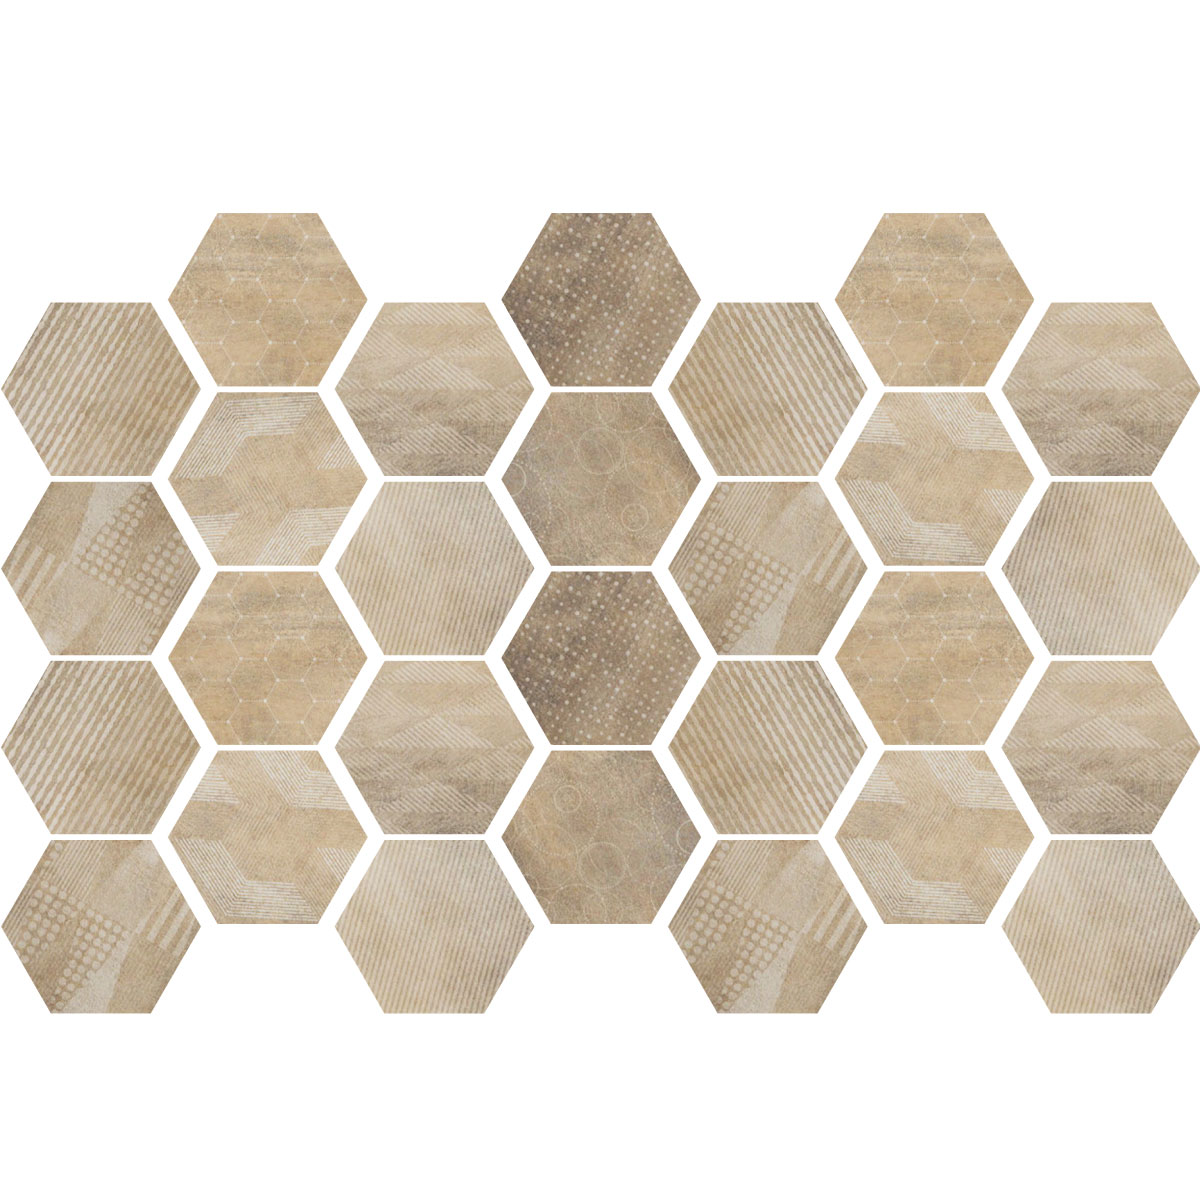 Carreaux De Ciment Hexagonal Stickers Carrelages Hexagones Bois Patiné Salle De Bain